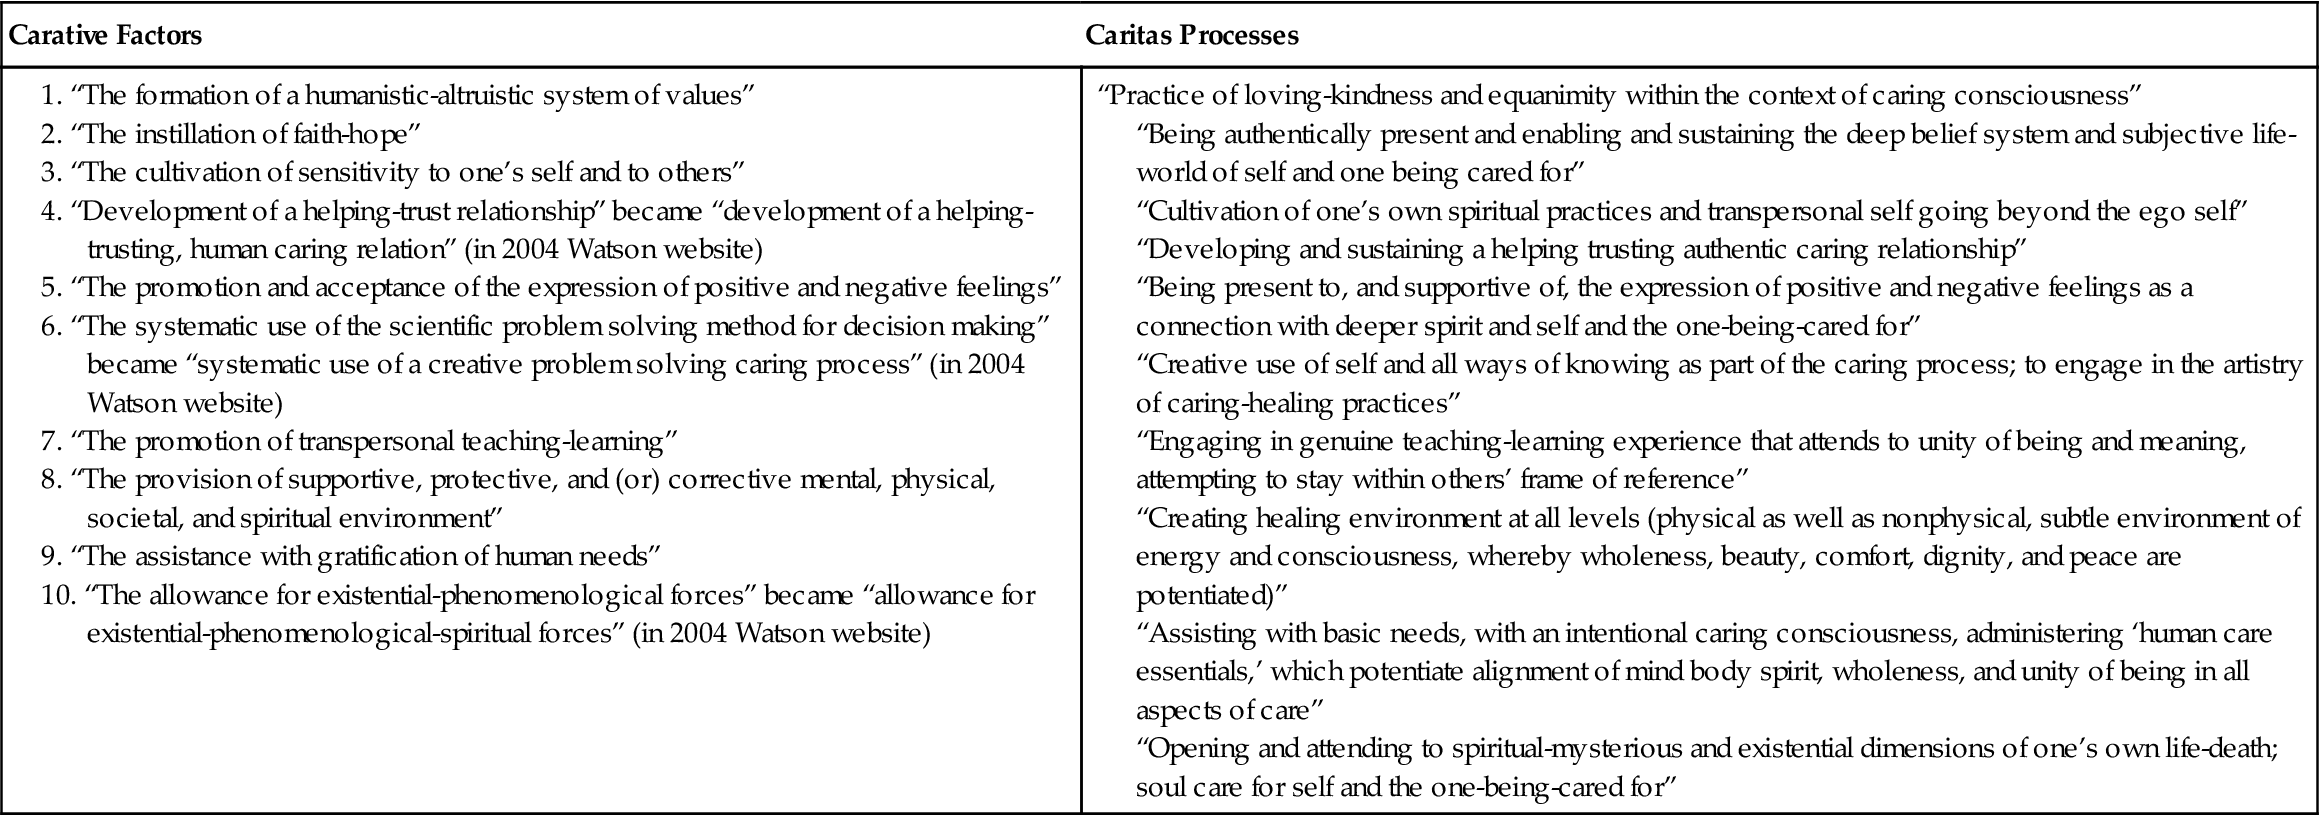 transpersonal care for the dying The transpersonal caring relationship describes how the nurse goes beyond an objective assessment, showing concerns toward the person's subjective and deeper meaning regarding their own health care situation, while the caring moment is defined as the moment (focal point in space and time) when the nurse and another person come together in such a way that an occasion for human caring is created (cara, 2003.